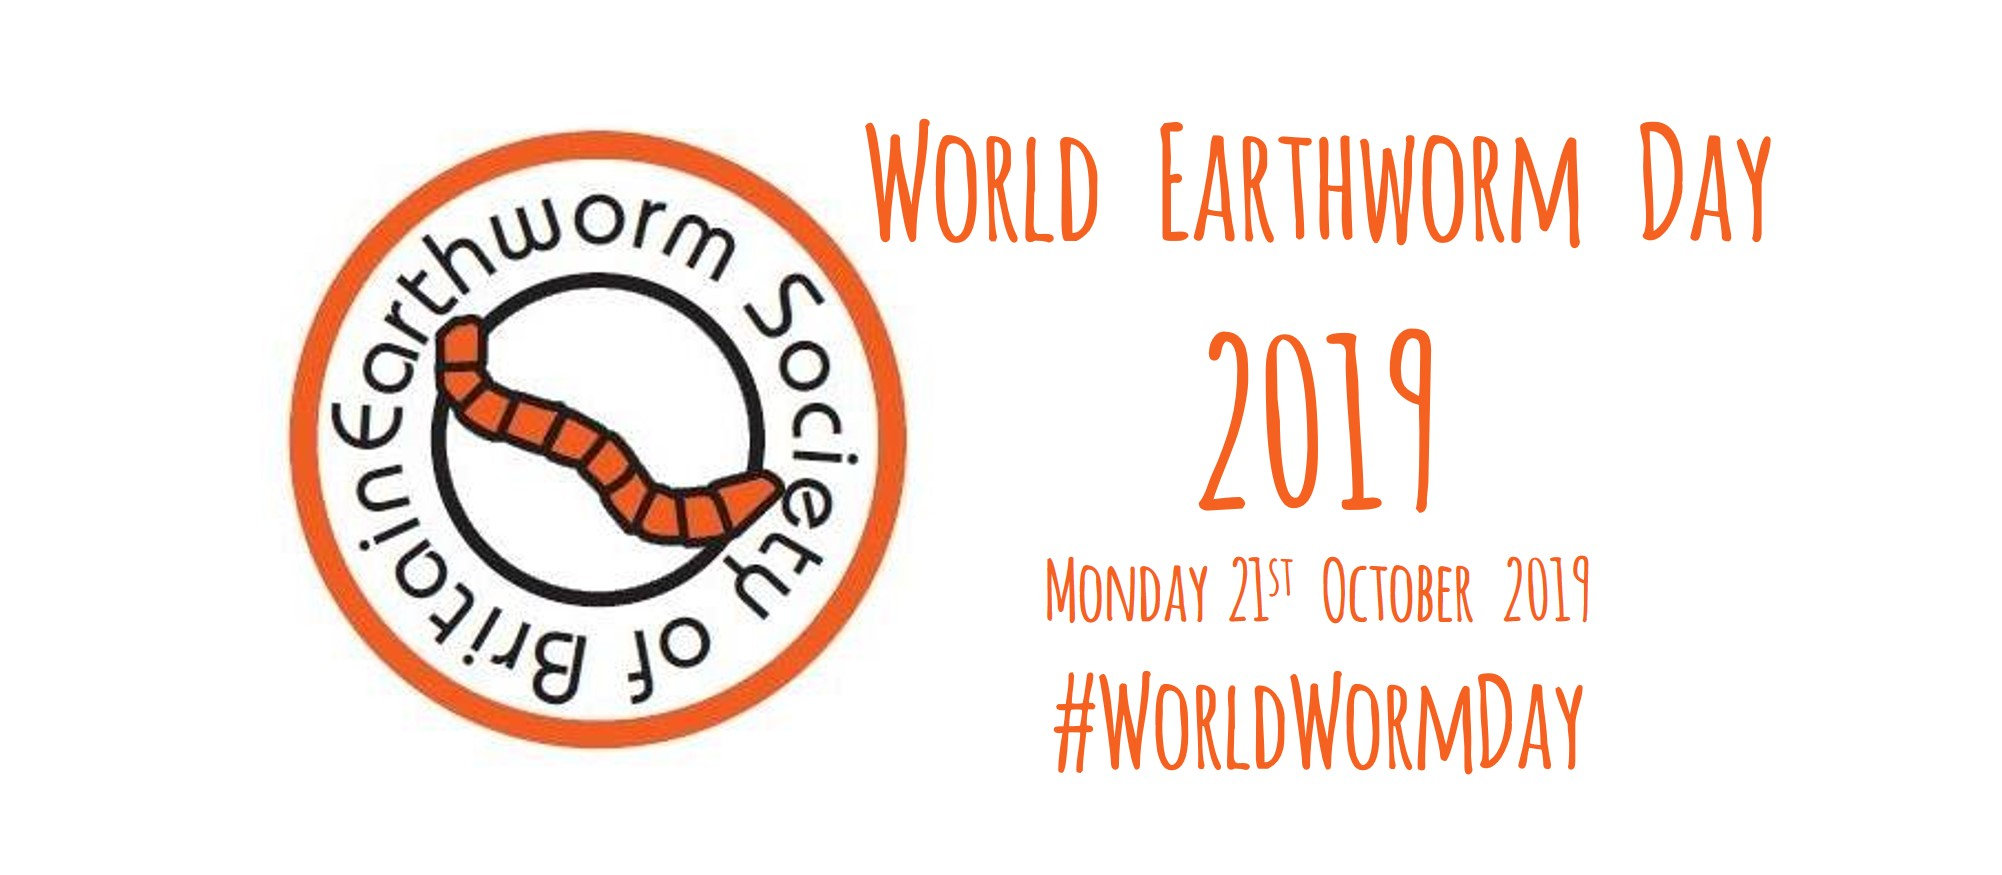 World Earthworm day 2019 banner image 2